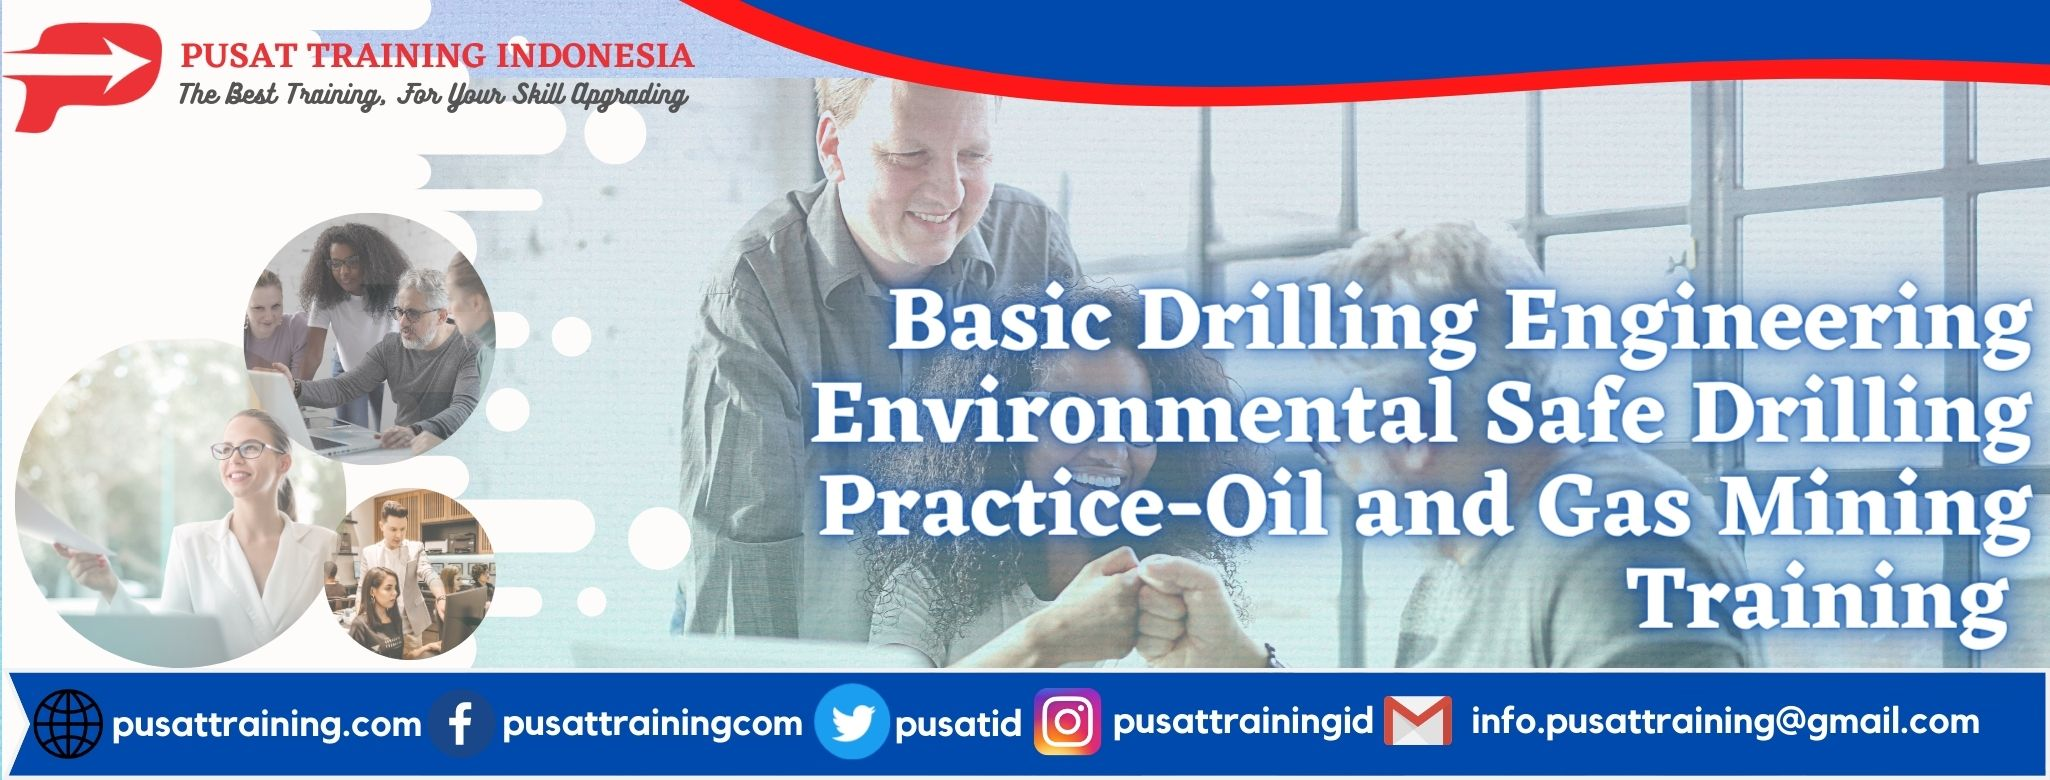 Basic-Drilling-Engineering-Environmental-Safe-Drilling-Practice-Oil-and-Gas-Mining-Training